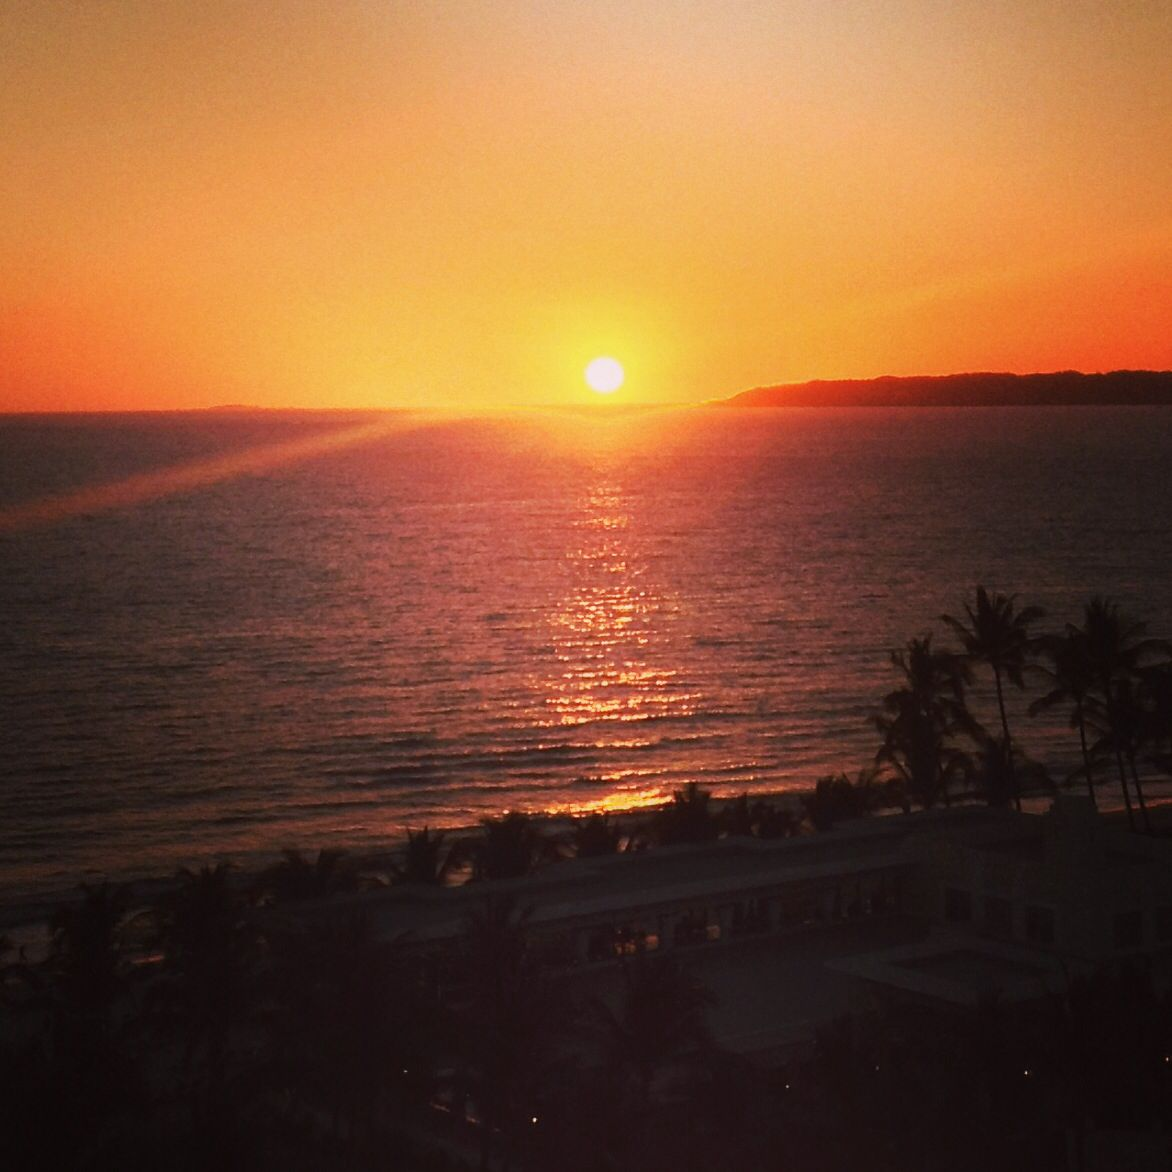 Puerto Vallarta, Mexico, amazing sunsets